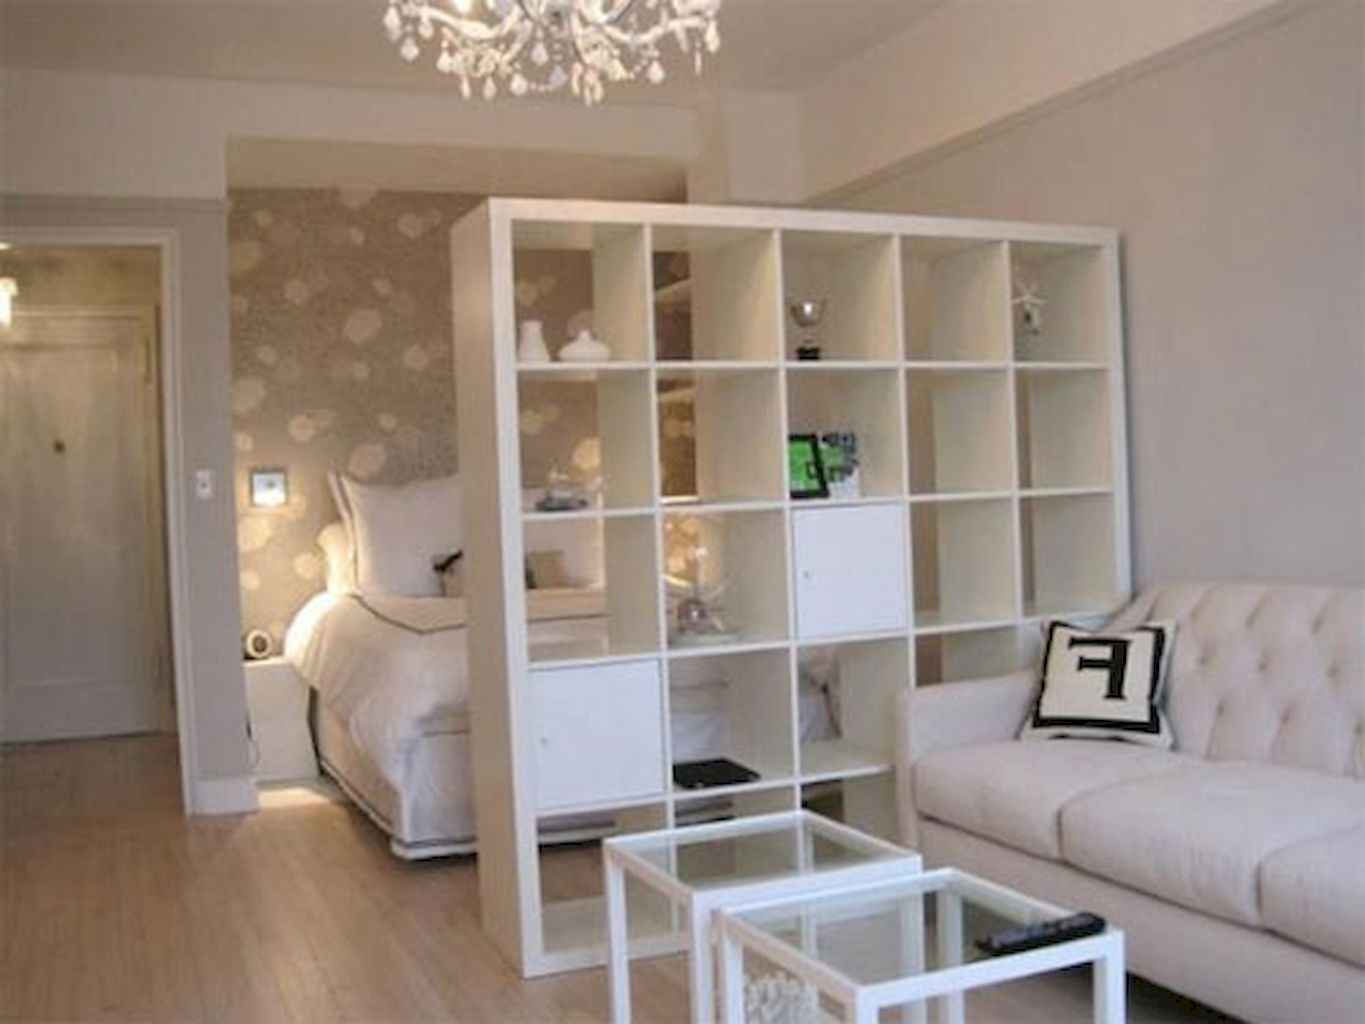 Cool small apartment decorating ideas on a budget (6)